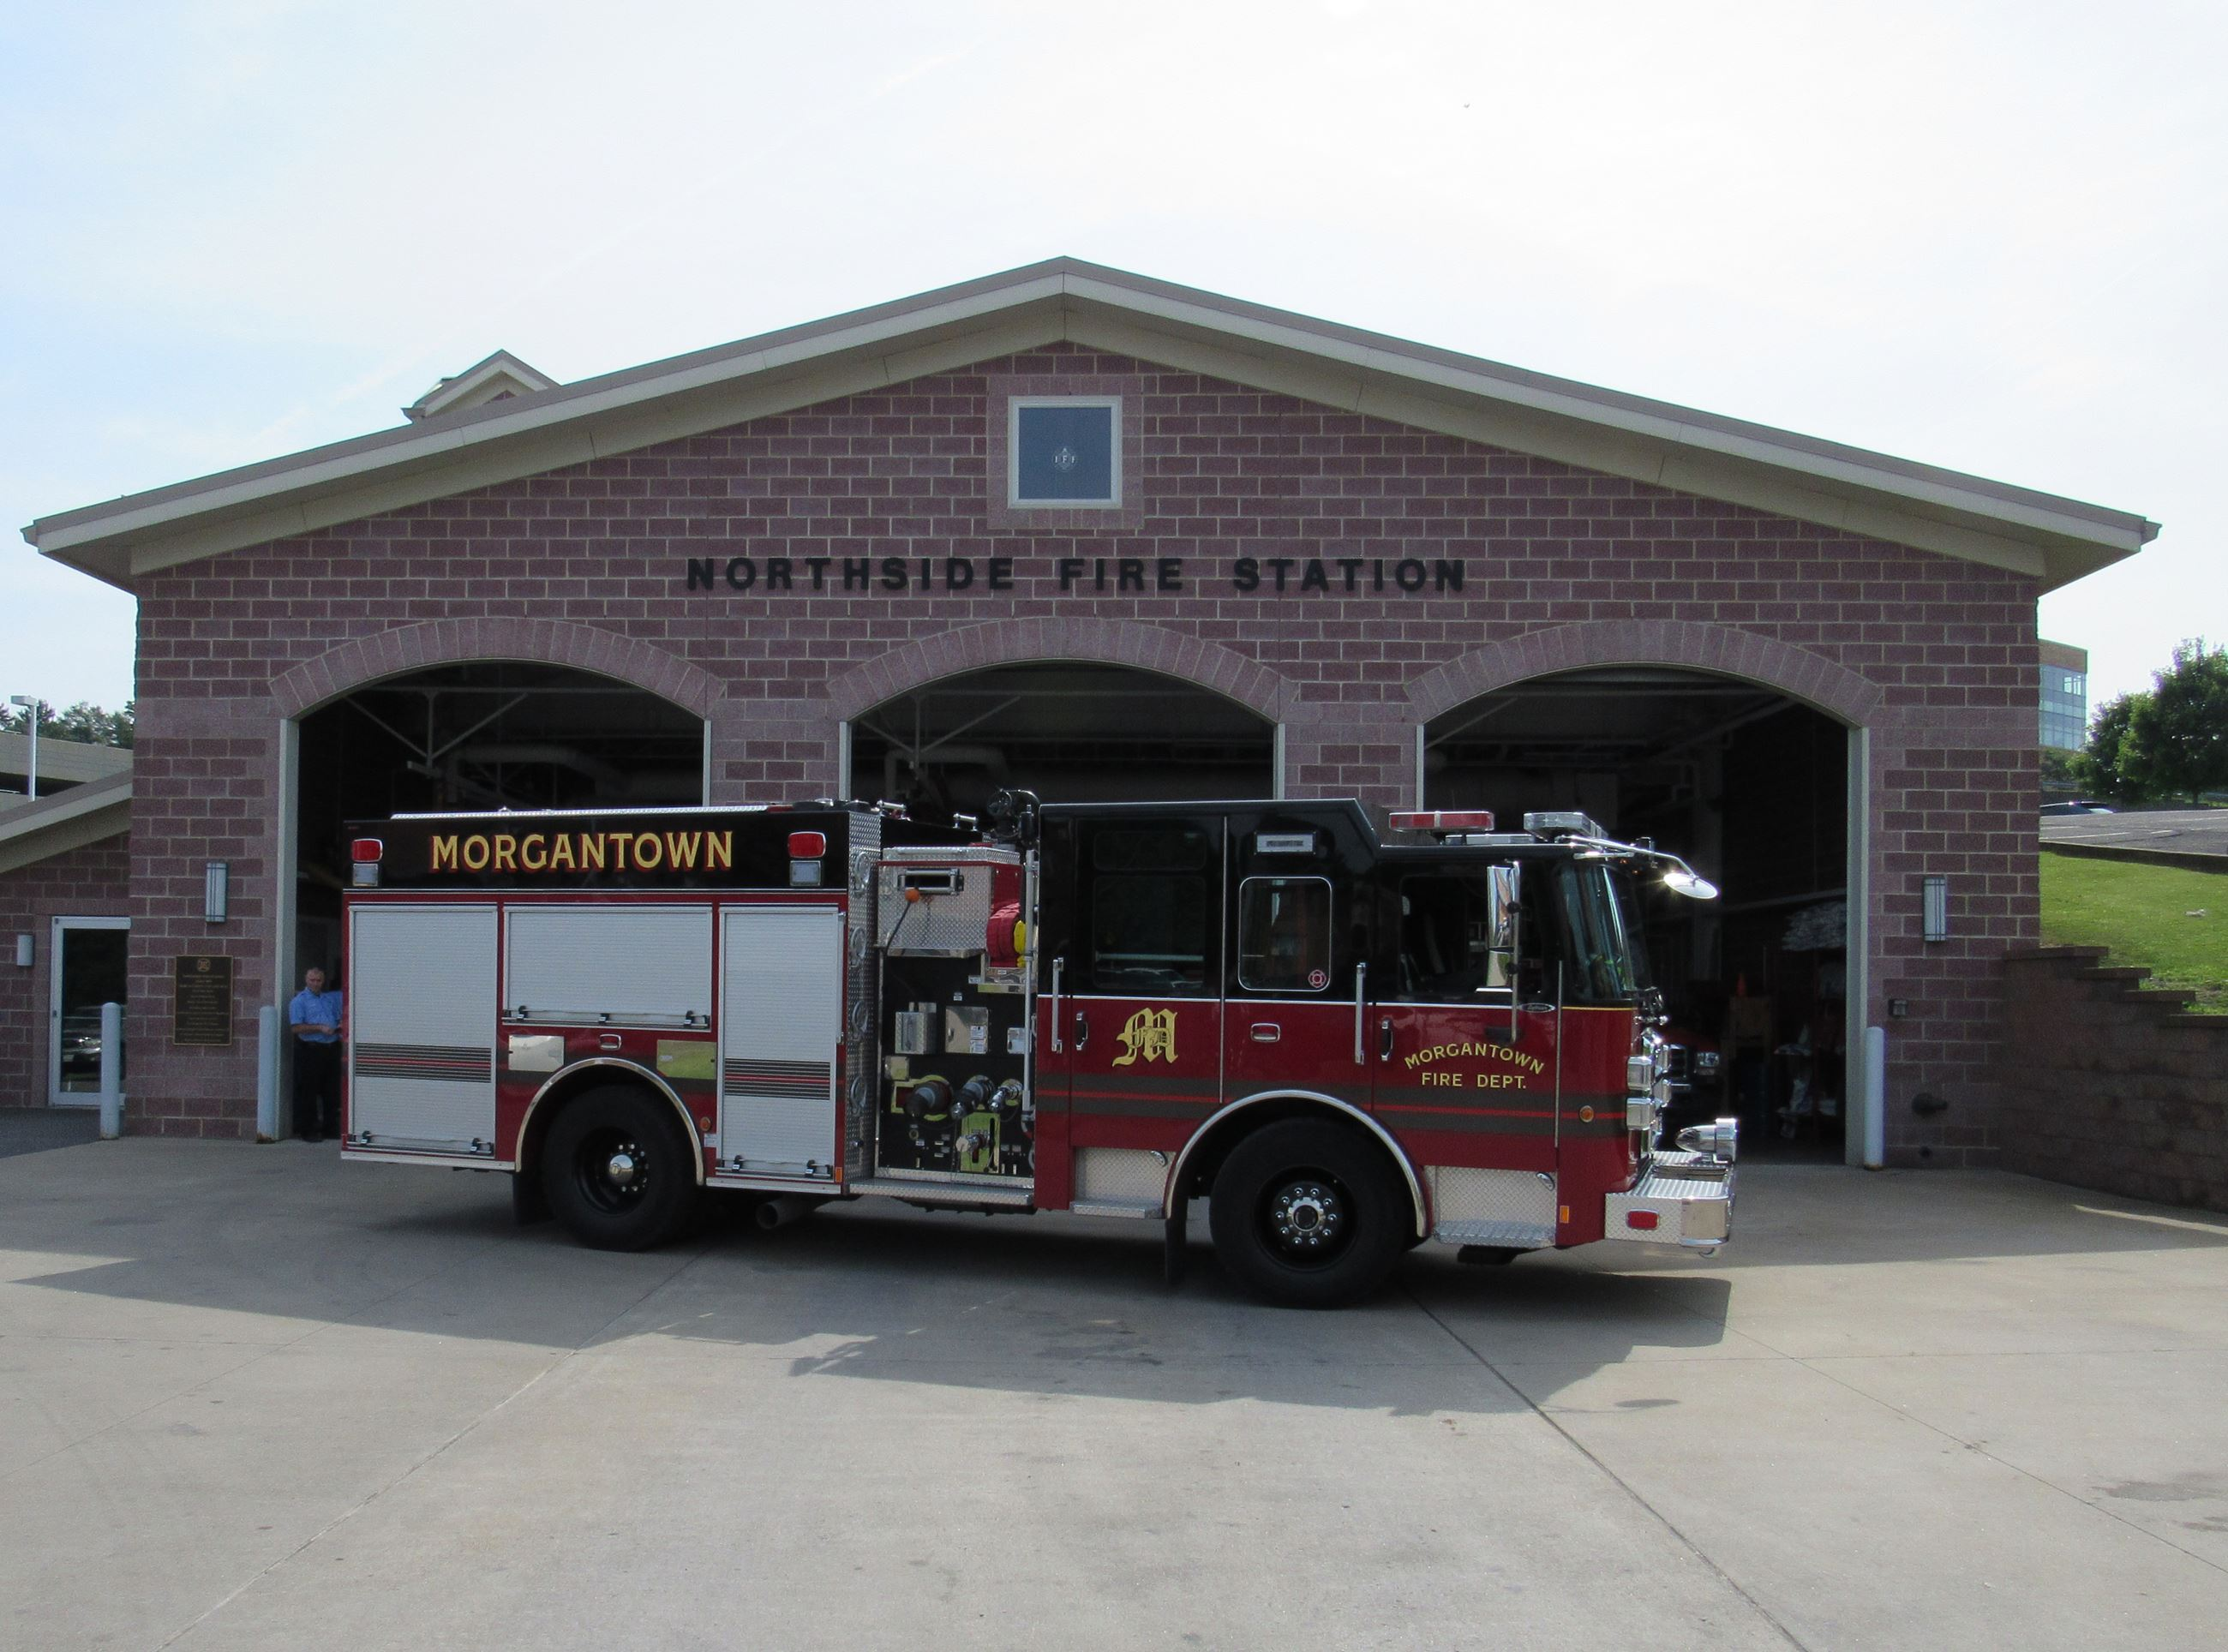 A picture of a firetruck outside of the Northside Fire Station in Morgantown.